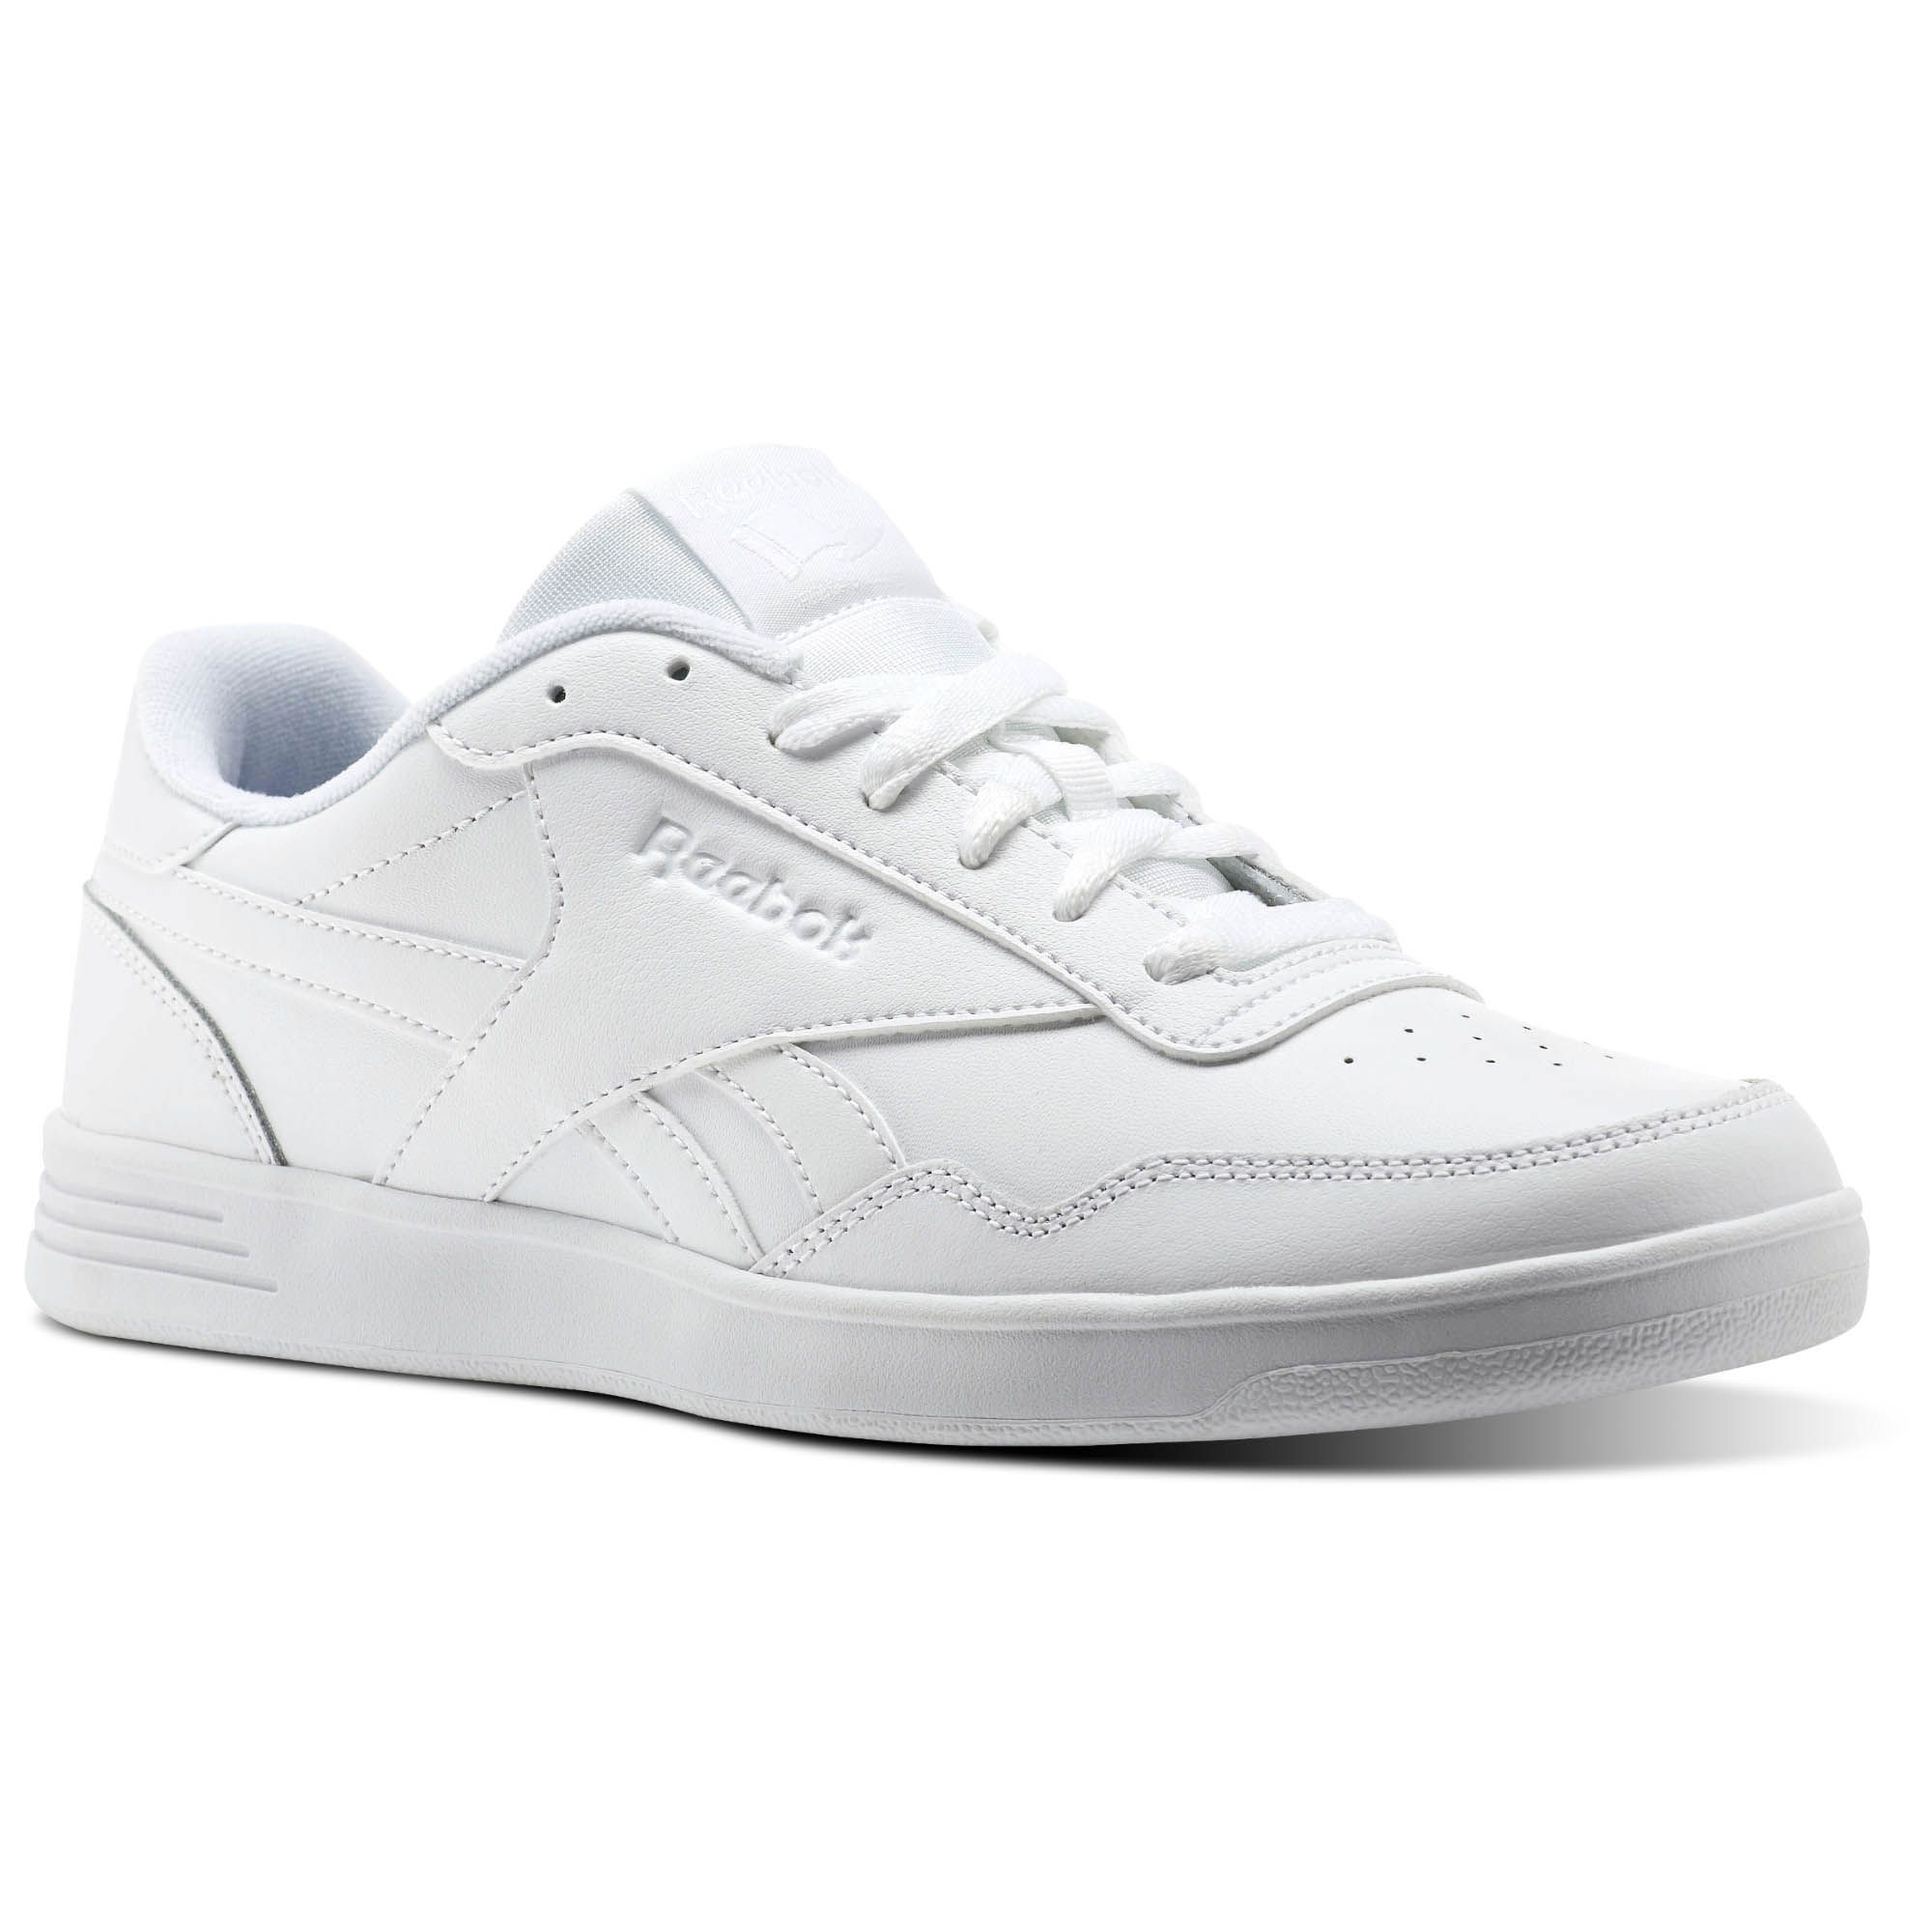 Reebok Royal Techque White Reebok Ireland Reebok Royal Sneakers Men Fashion White Reebok